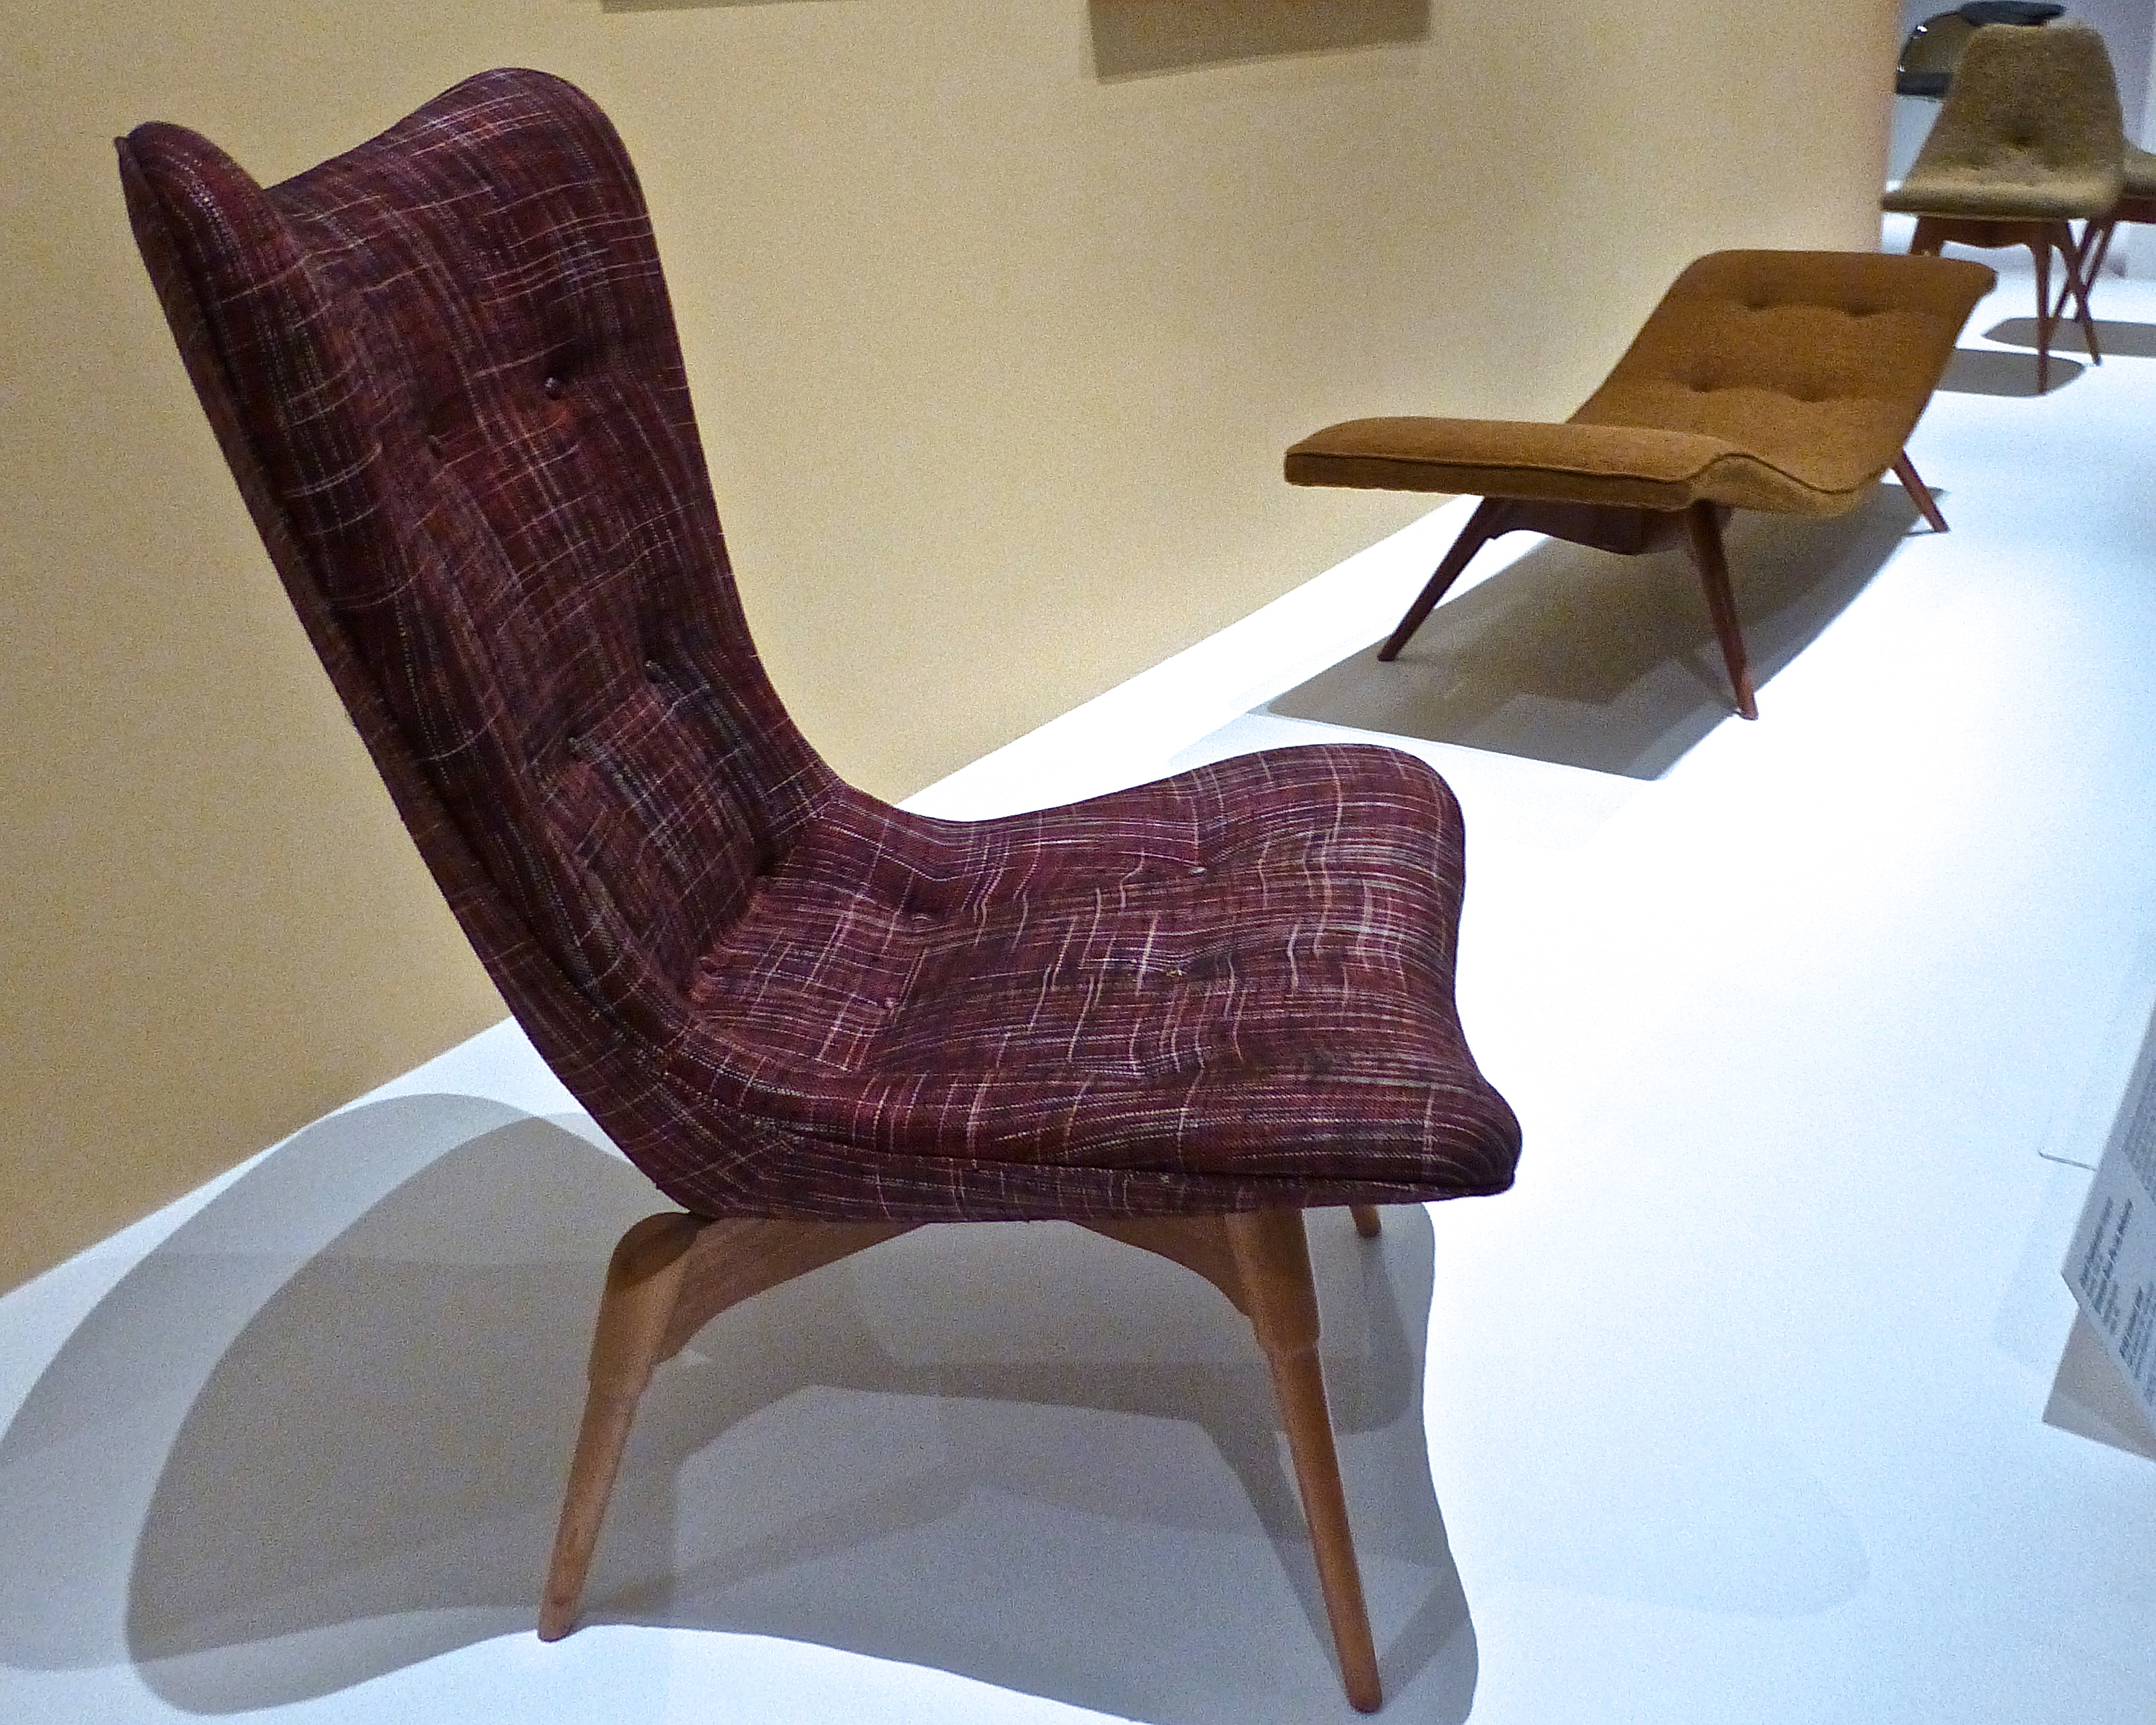 R152 Contour Chair by Grant Featherston, 1950